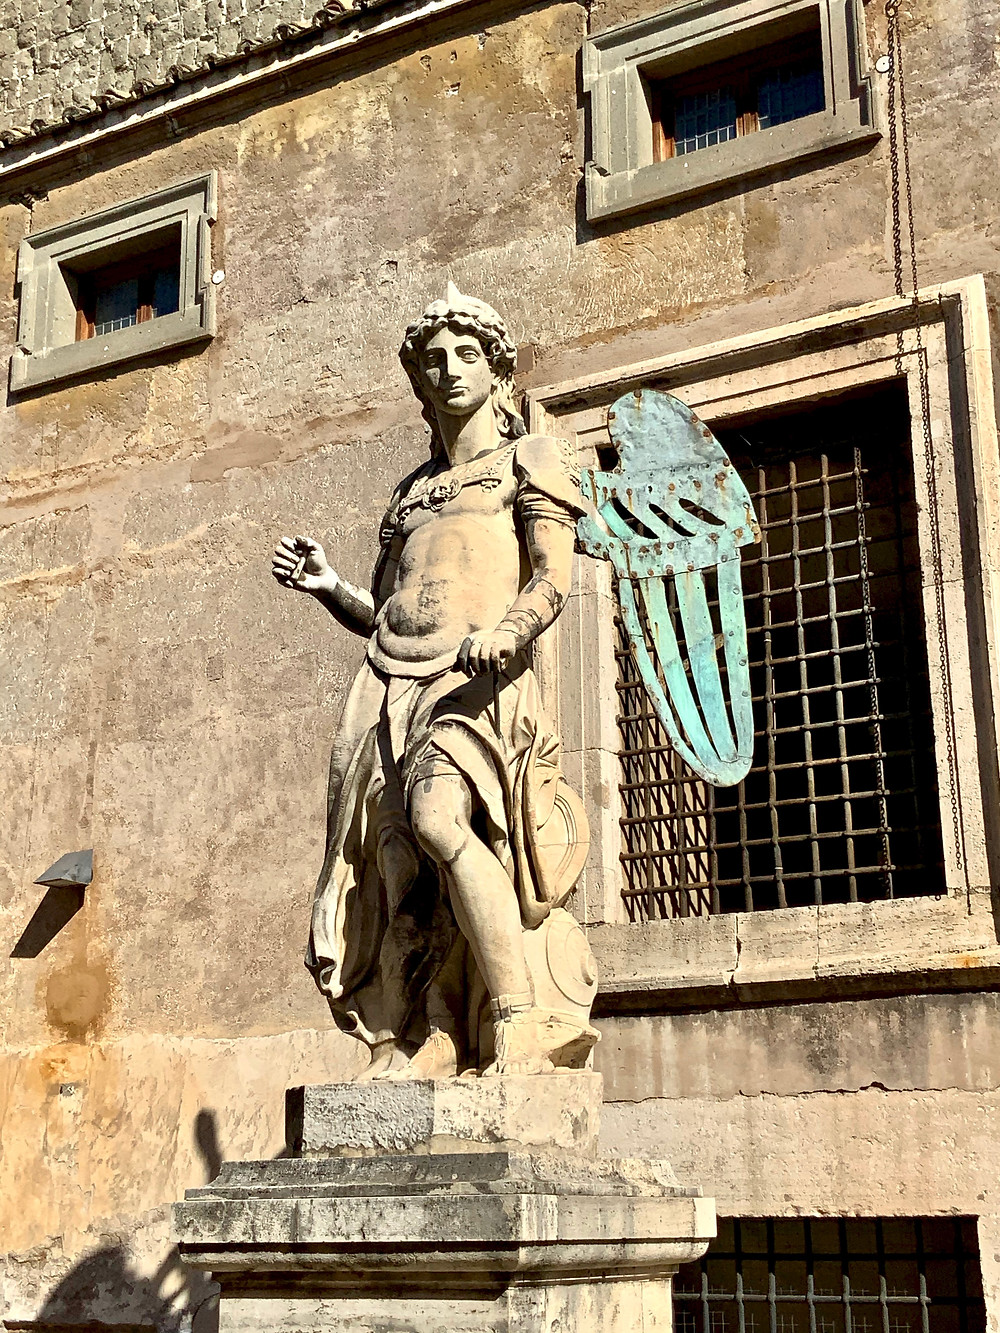 statue of the Archangel Michael in the Courtyard of the Angel